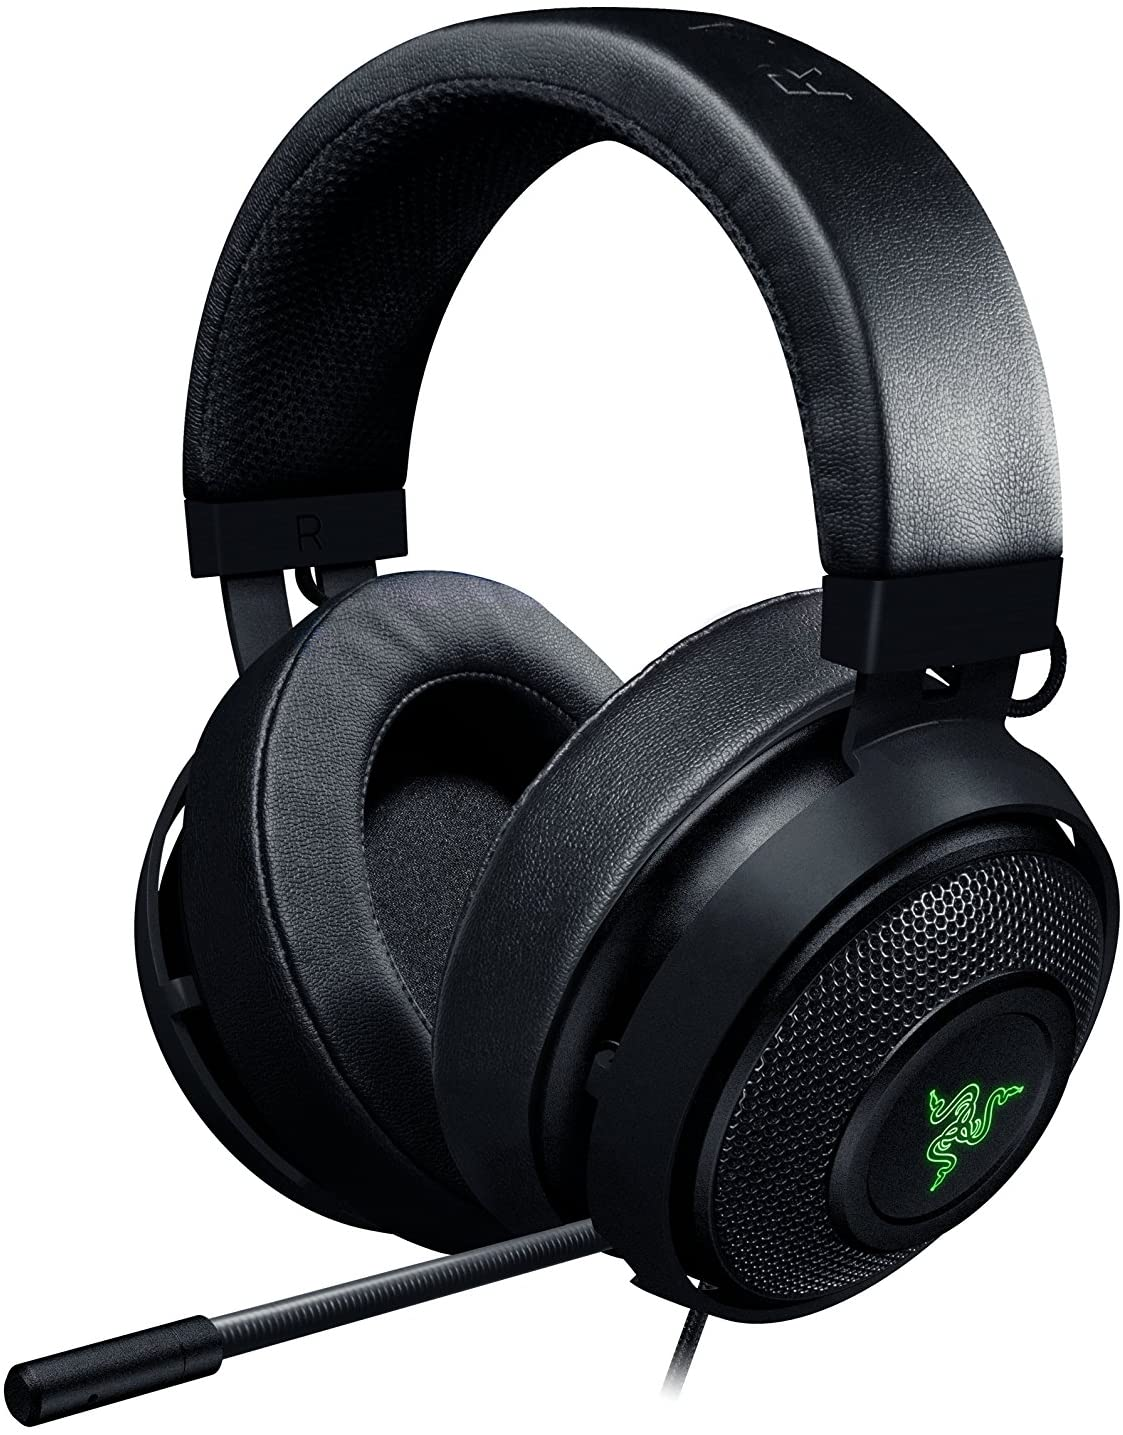 Top 5 best RGB Gaming headsets under $100 4